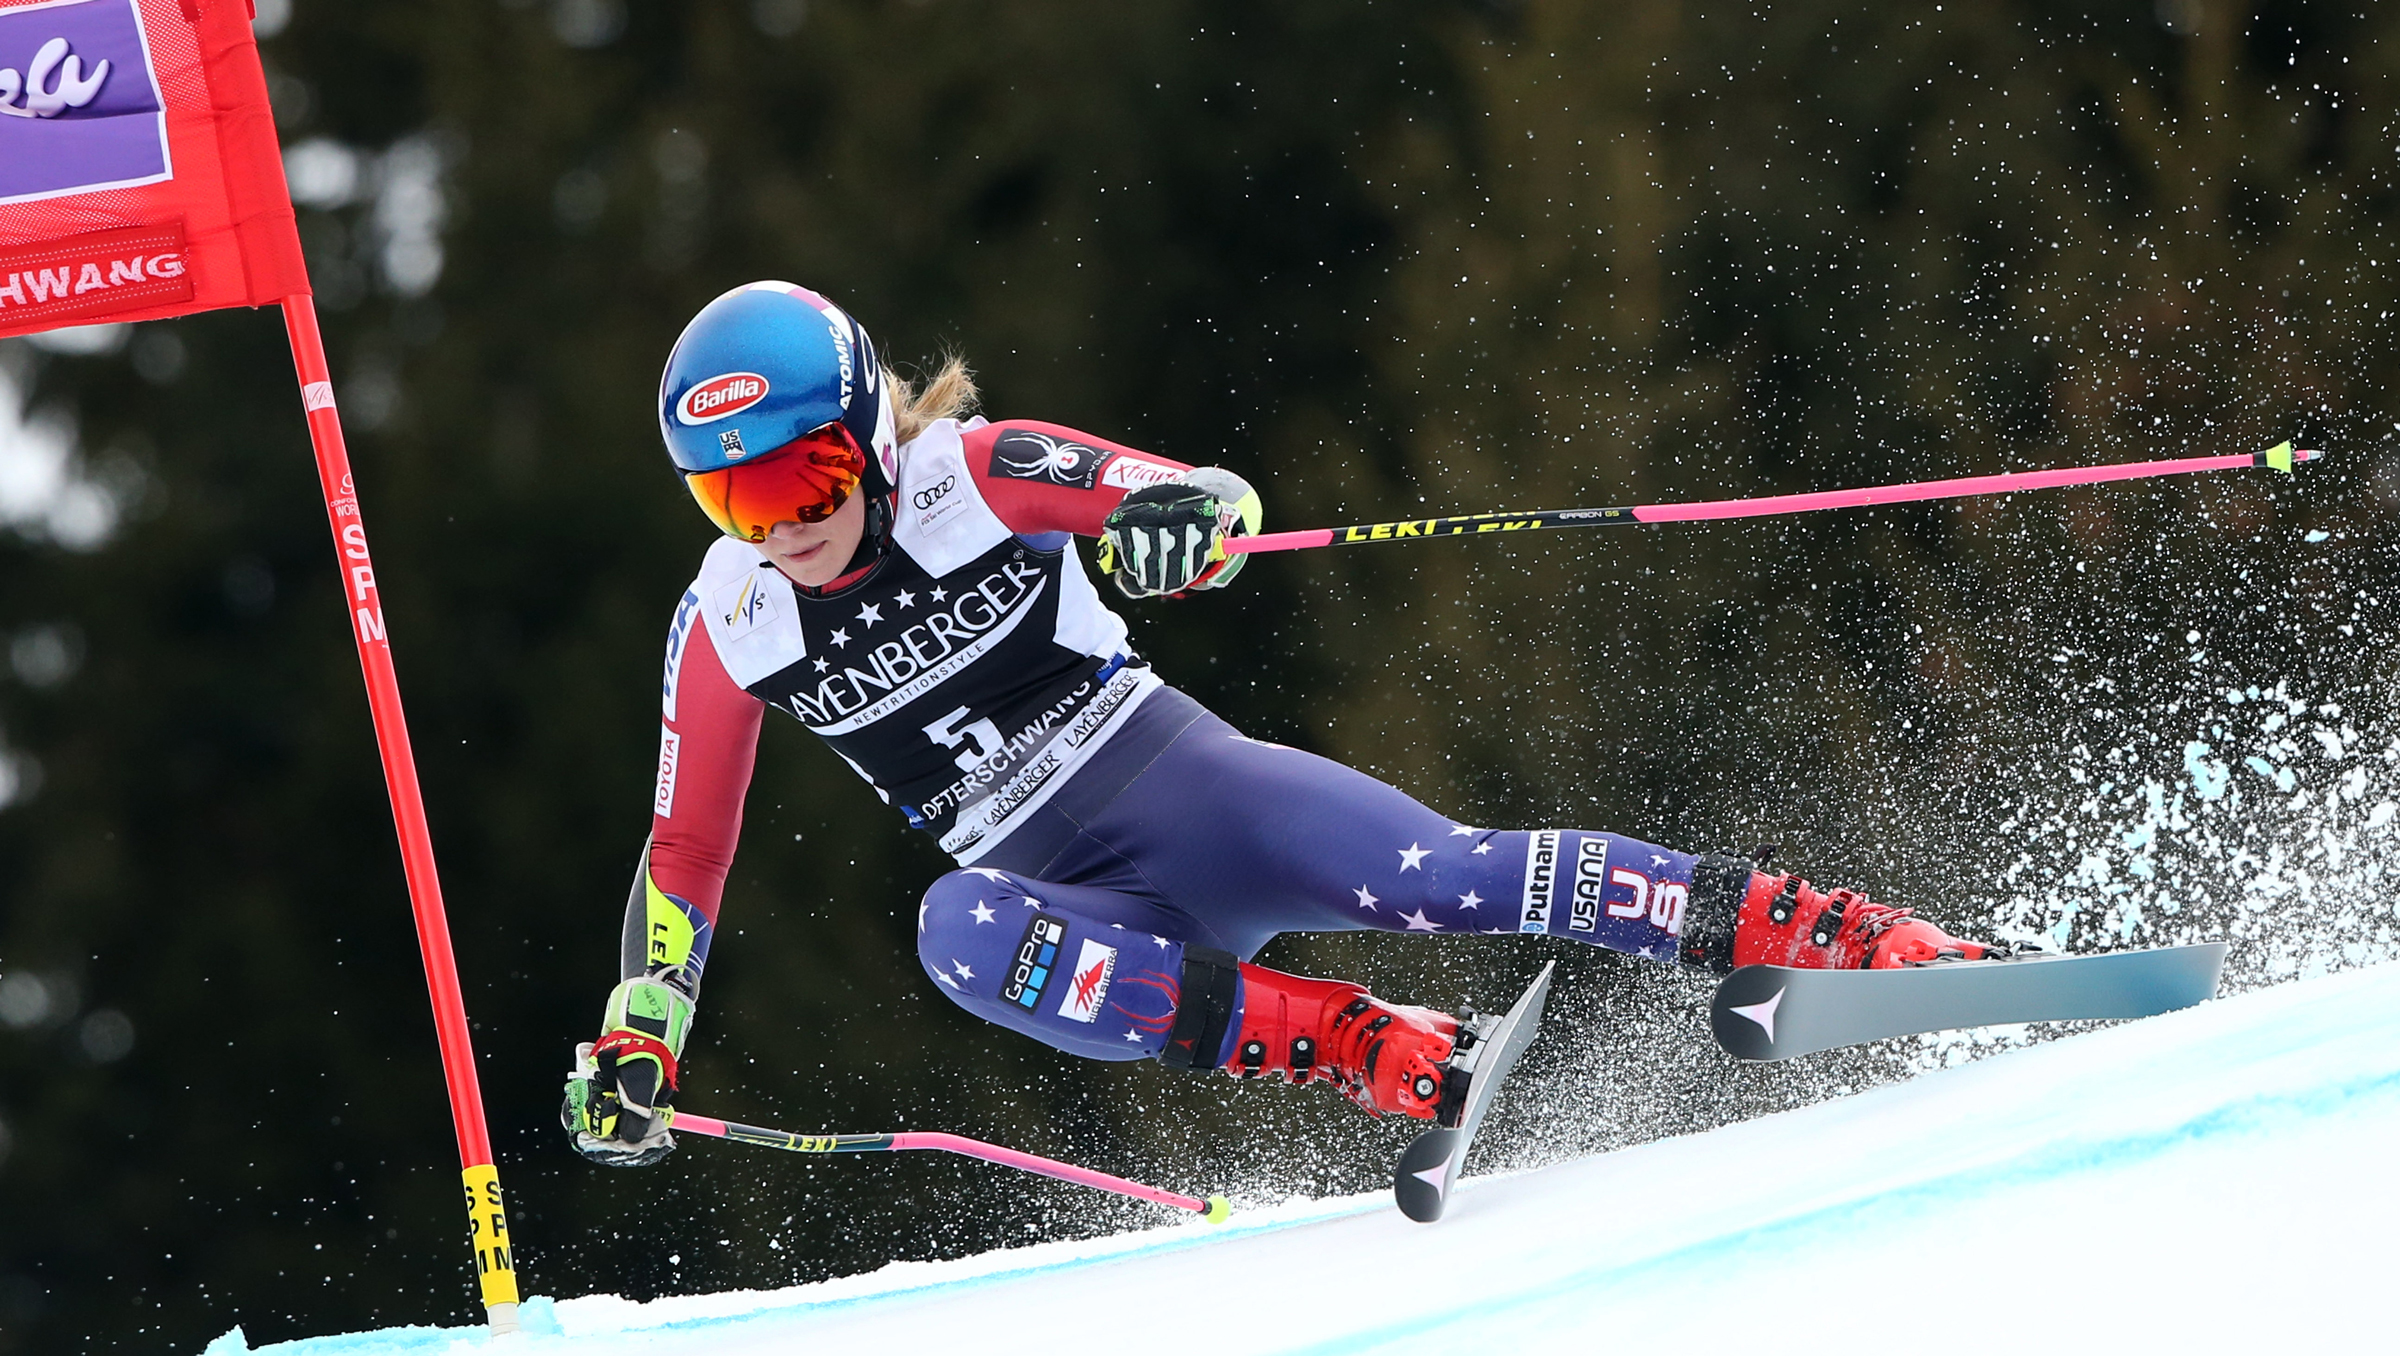 Mikaela Shiffrin finished third in Friday's FIS Ski World Cup giant slalom in Ofterschwang, Germany, and wrapped up her second-consecutive overall World Cup title. (Getty Images/Agence Zoom - Christophe Pallot)